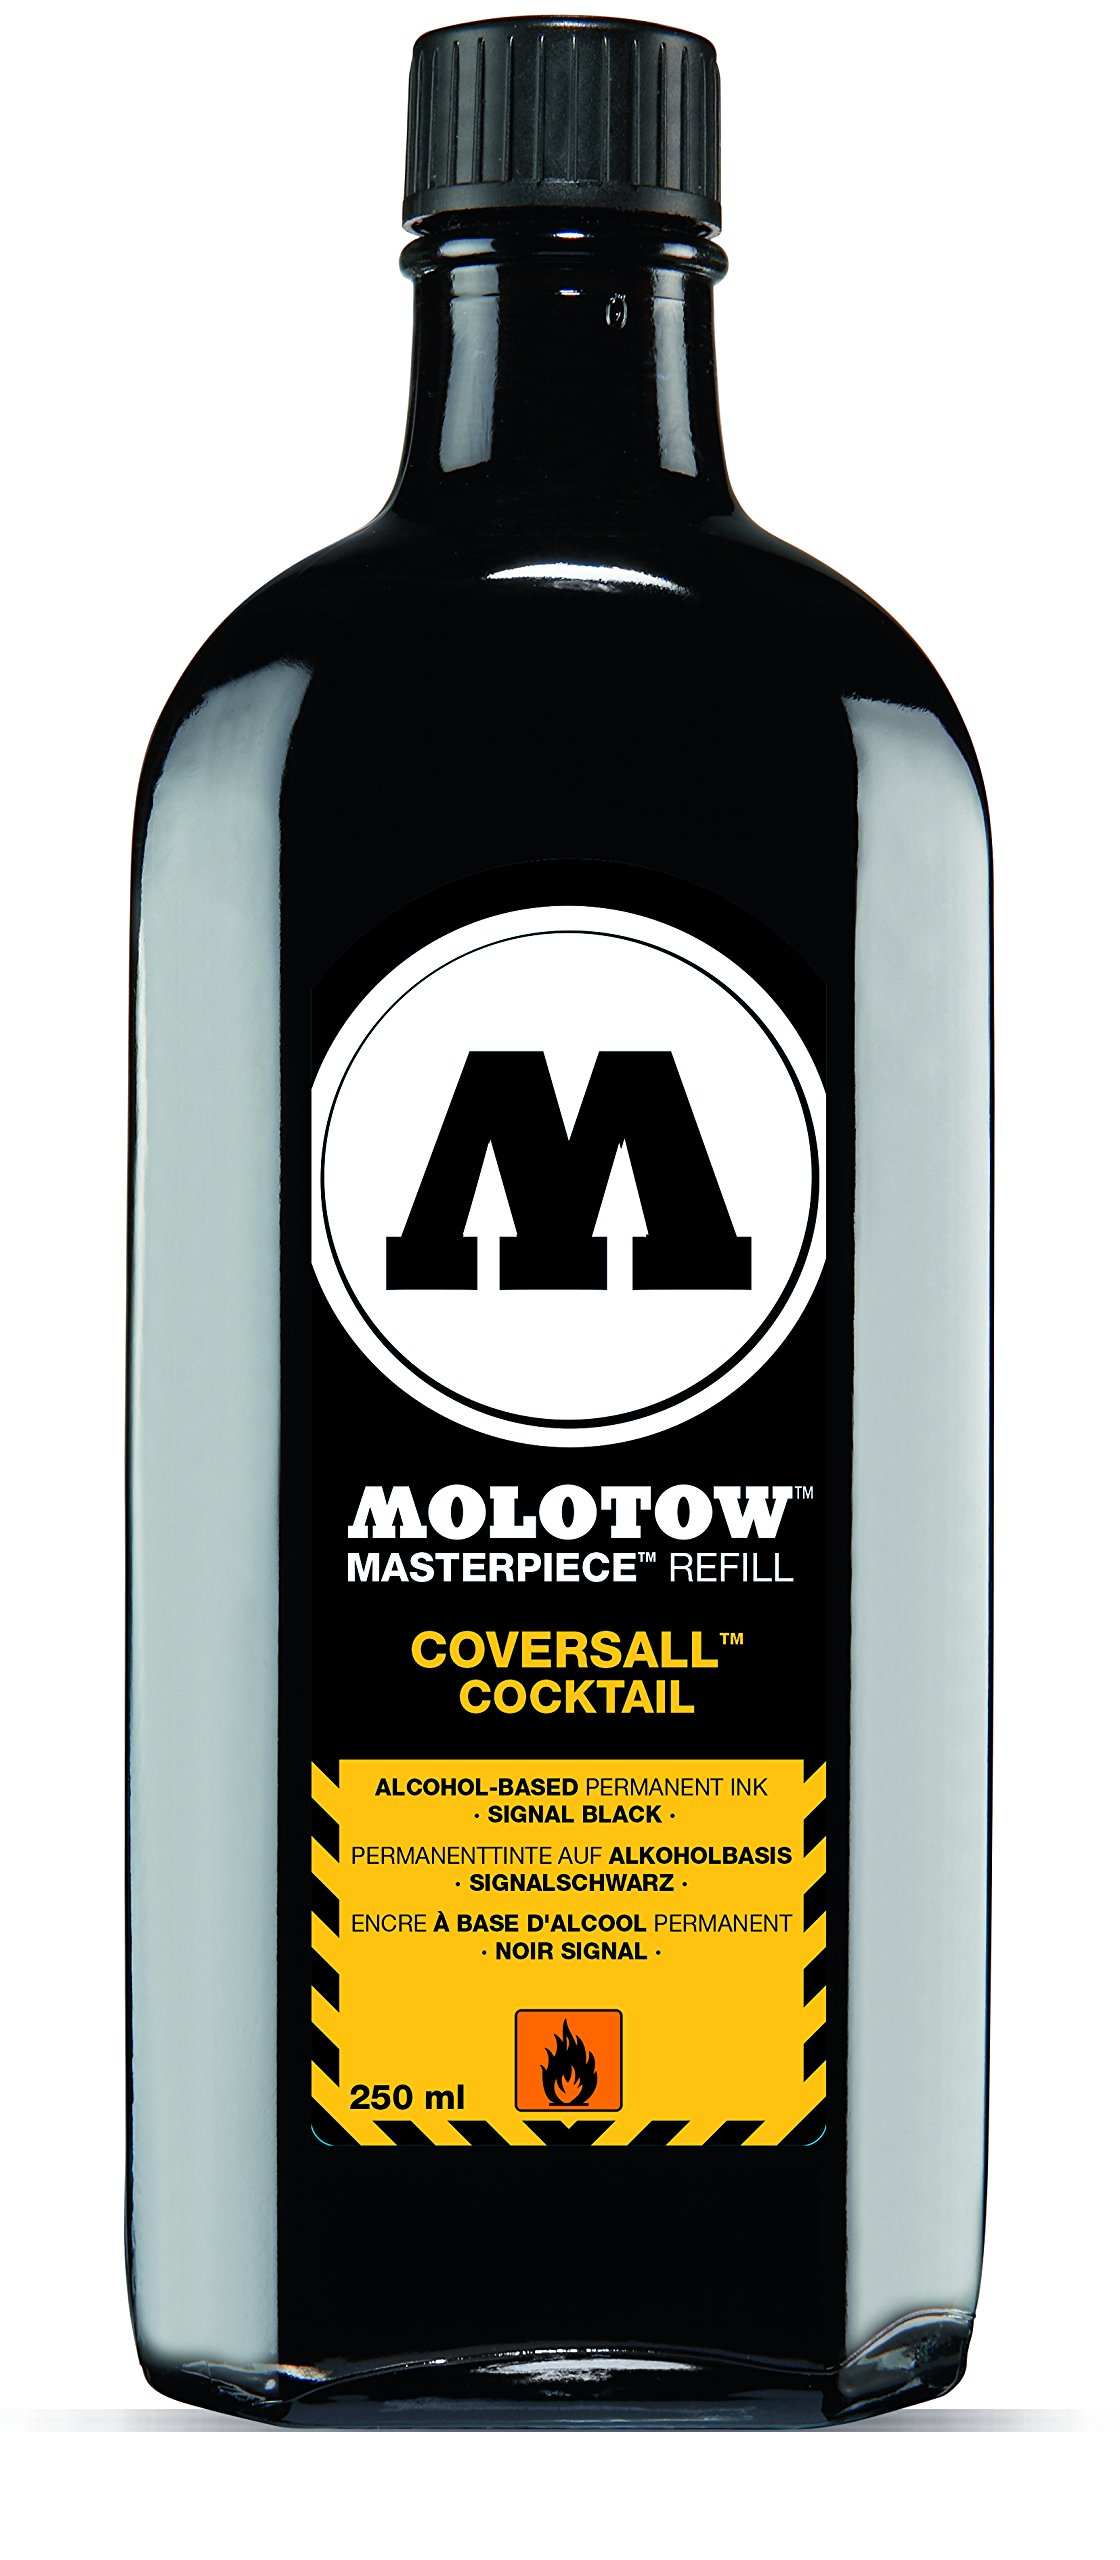 Molotow Cocktail CoversAll Permanent Ink Refill, Refill for Molotow 760.000 (Sold Separately), 250ml Bottle, Signal Black, 1 Each (691.760)